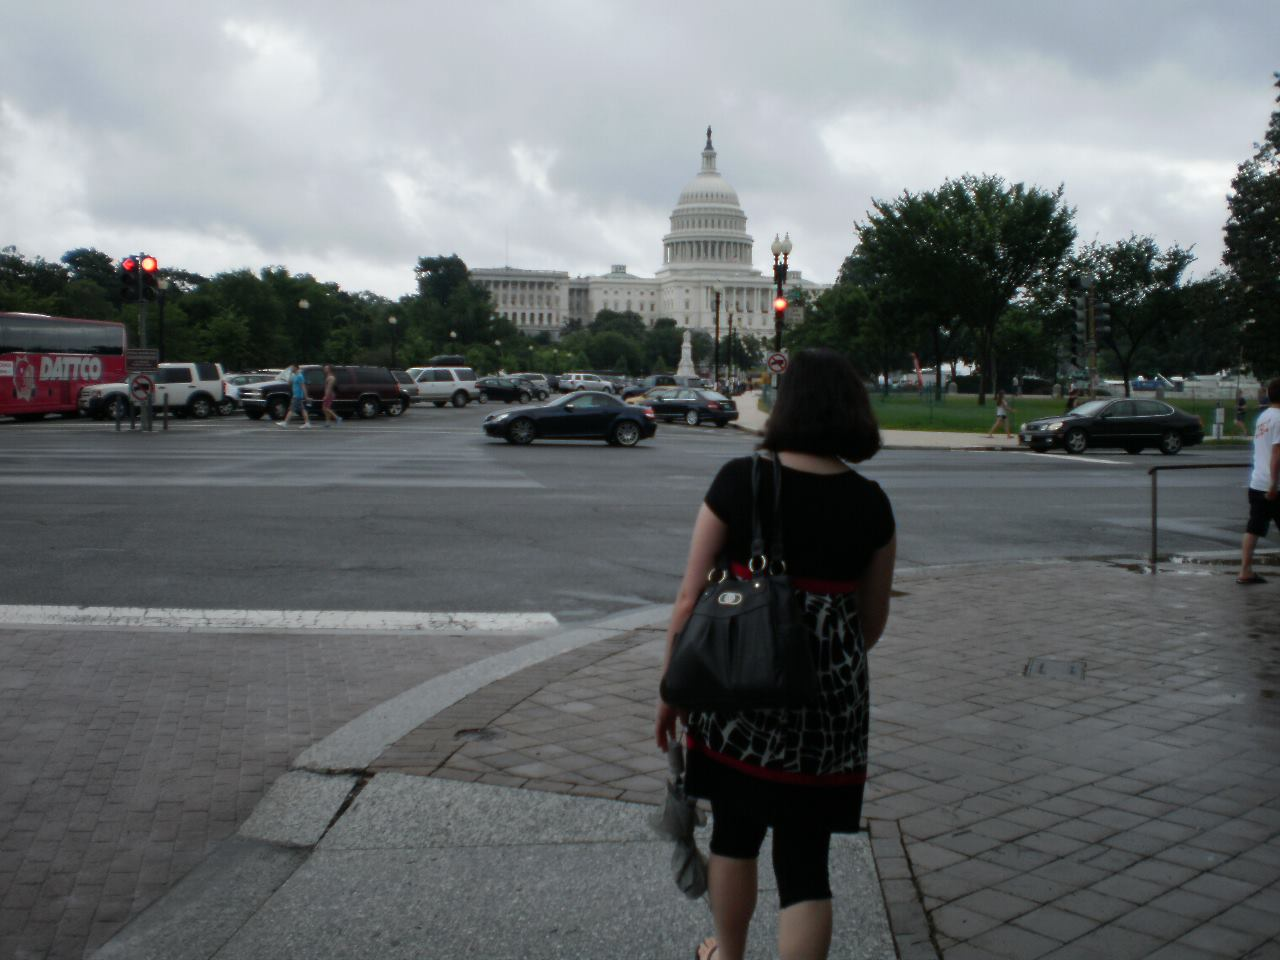 Sarah looking at the Capitol in Washington, D.C. while applying for her visa in Spain.